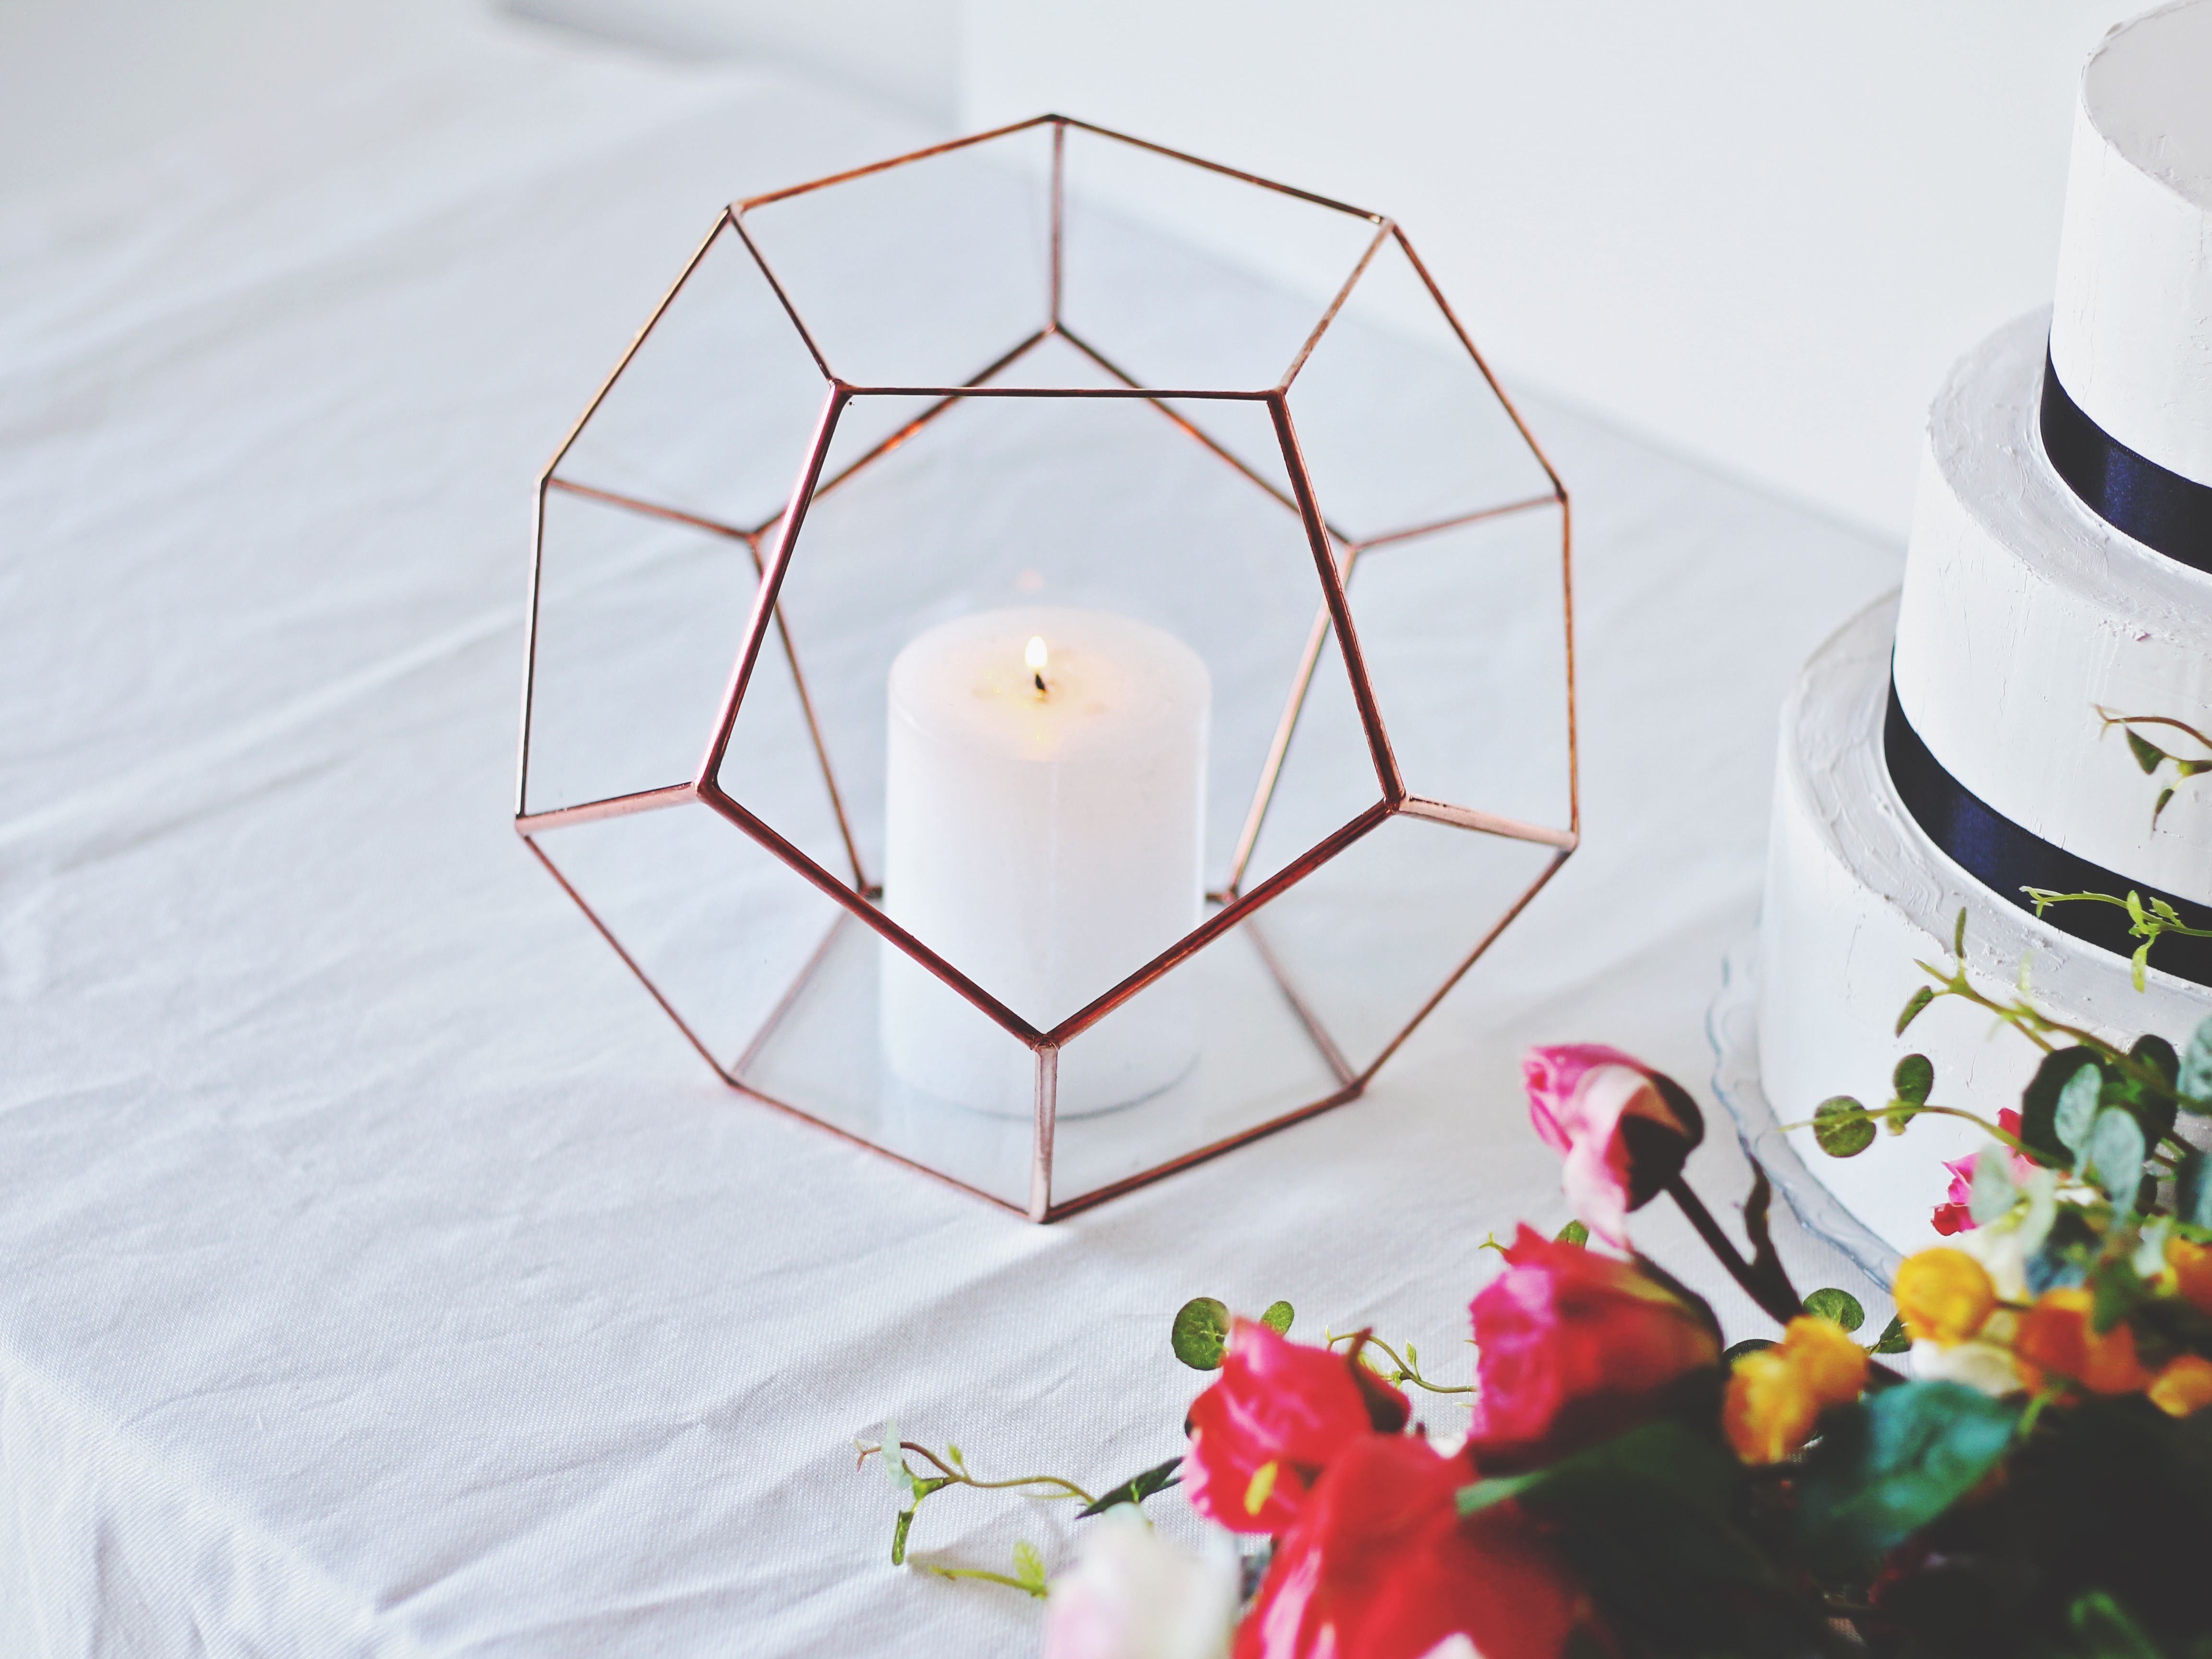 Large Geometric Glass Terrarium Container - Unique Christmas Gifts For